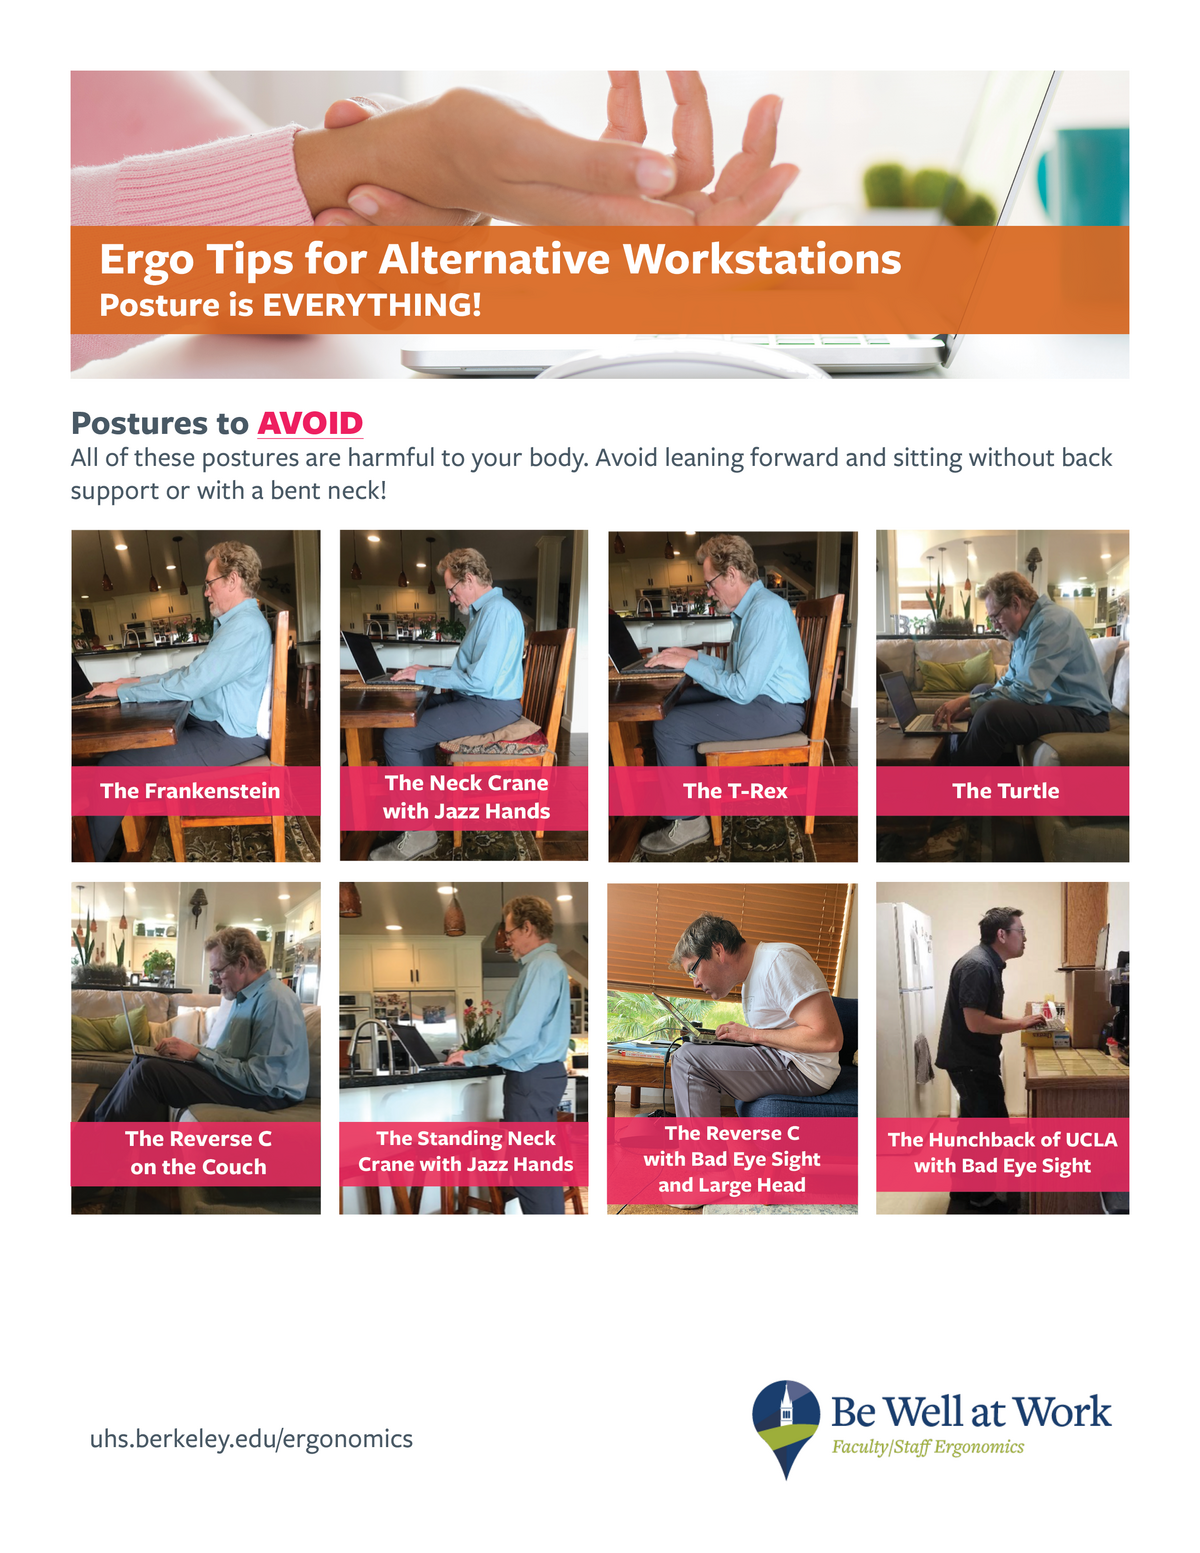 Tips for alternative workstations handout